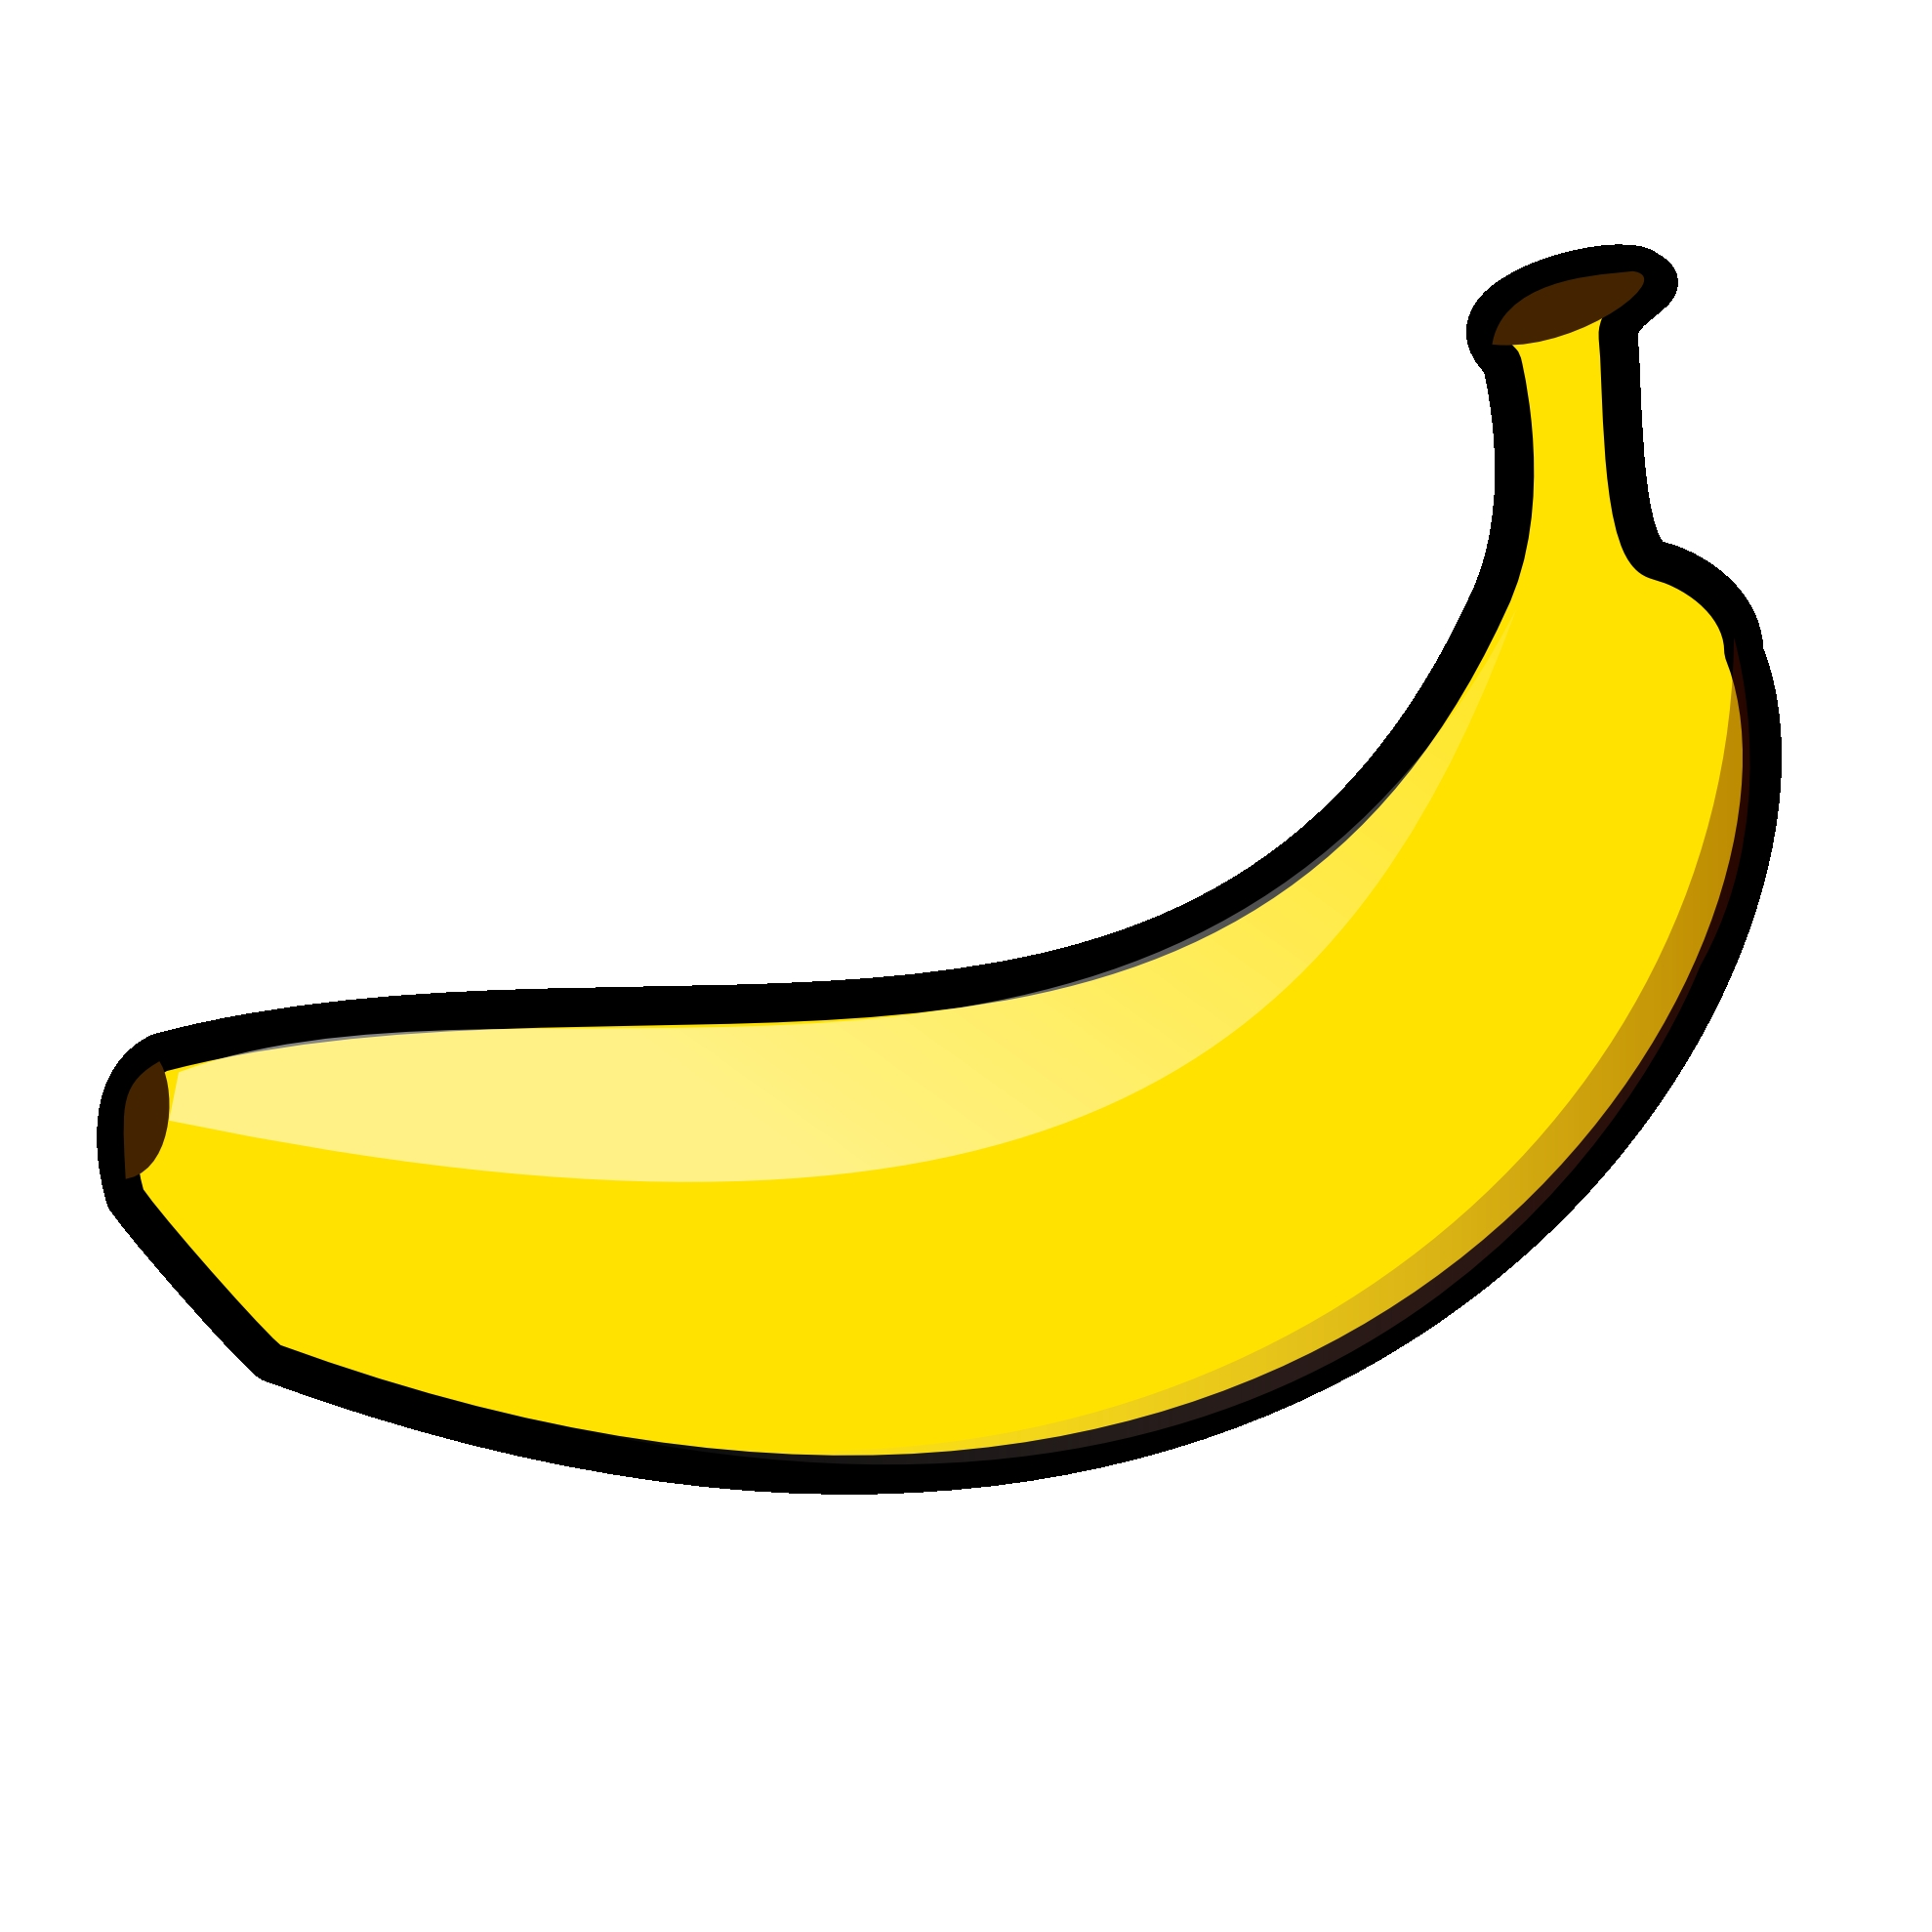 7 clipart banana. Unique gallery digital collection